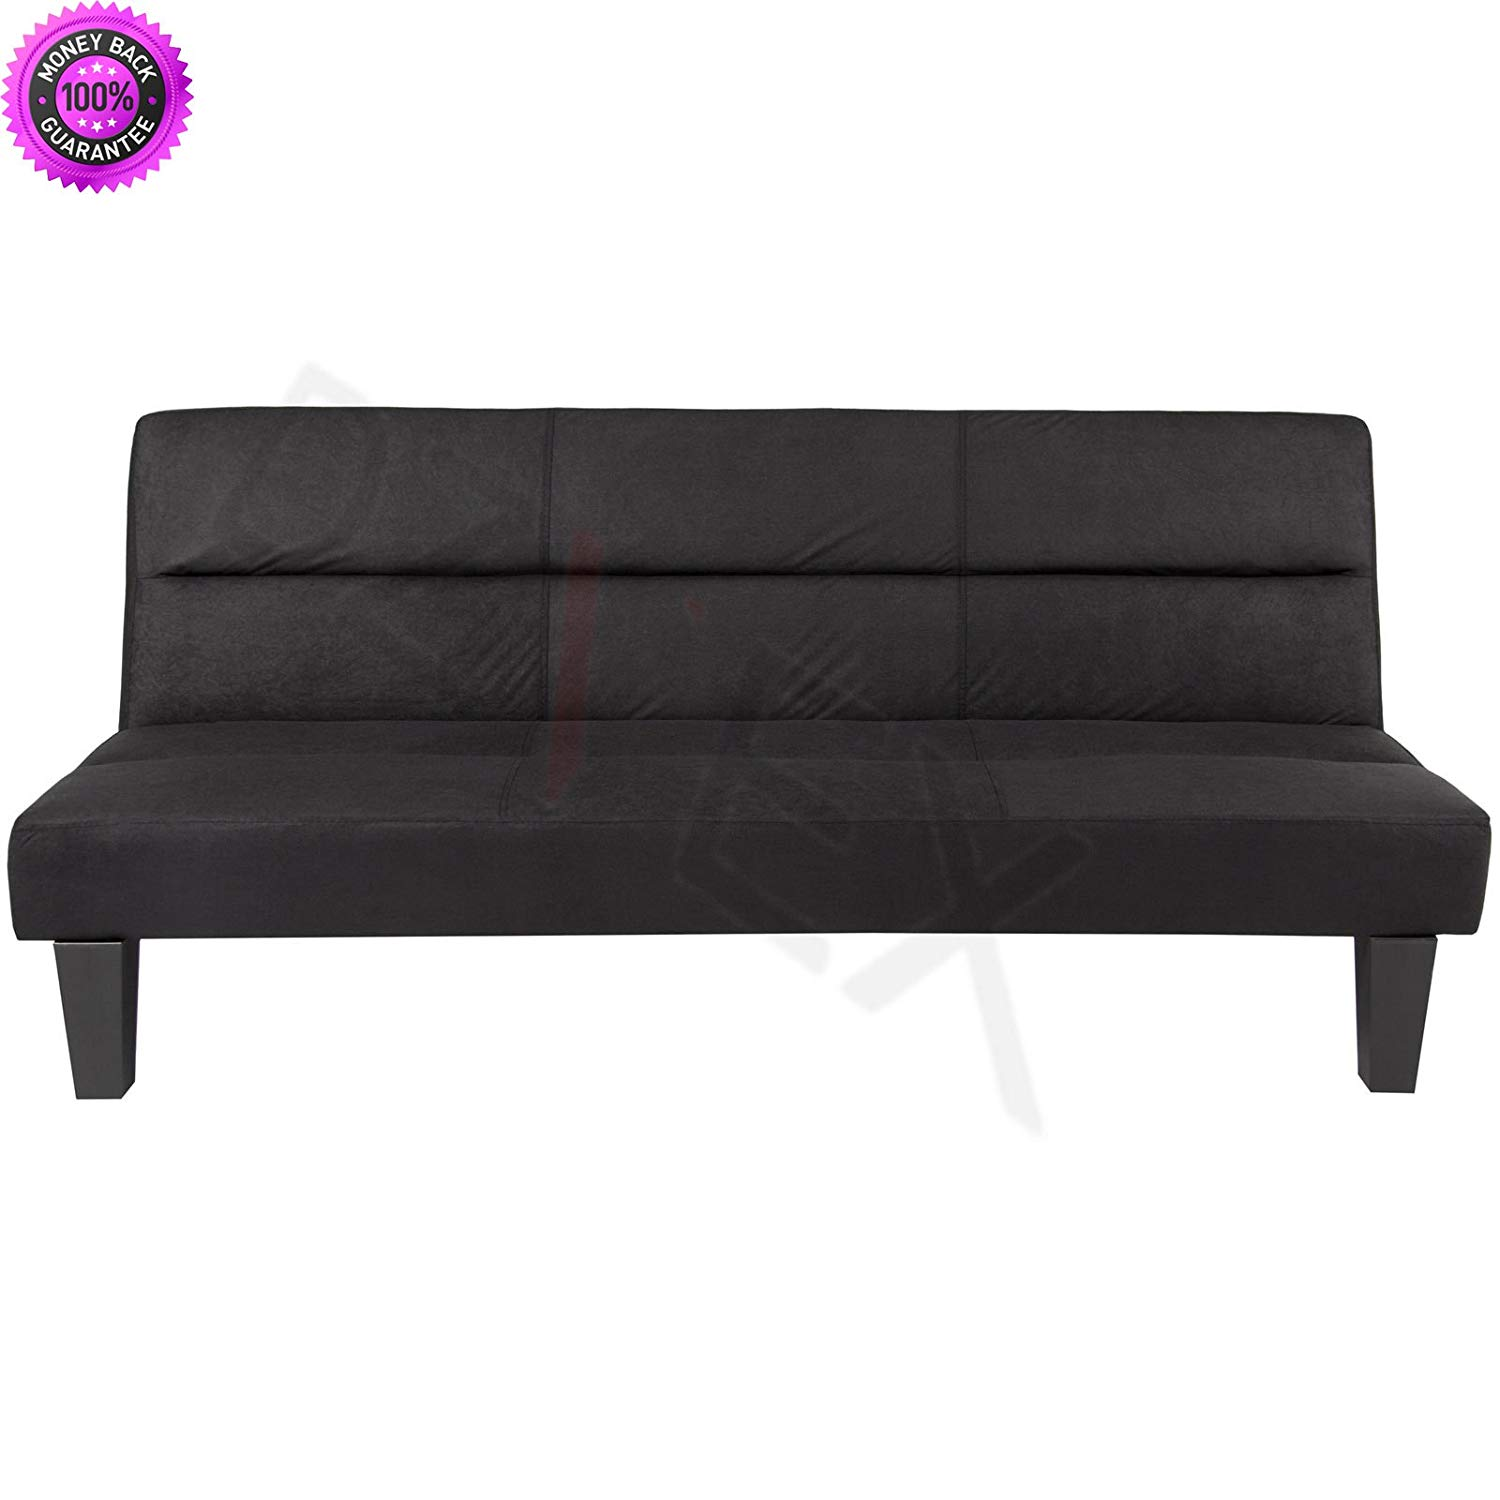 Get Quotations Dzvex Microfiber Futon Folding Couch Sofa Black And Full Size Fraame Mattress